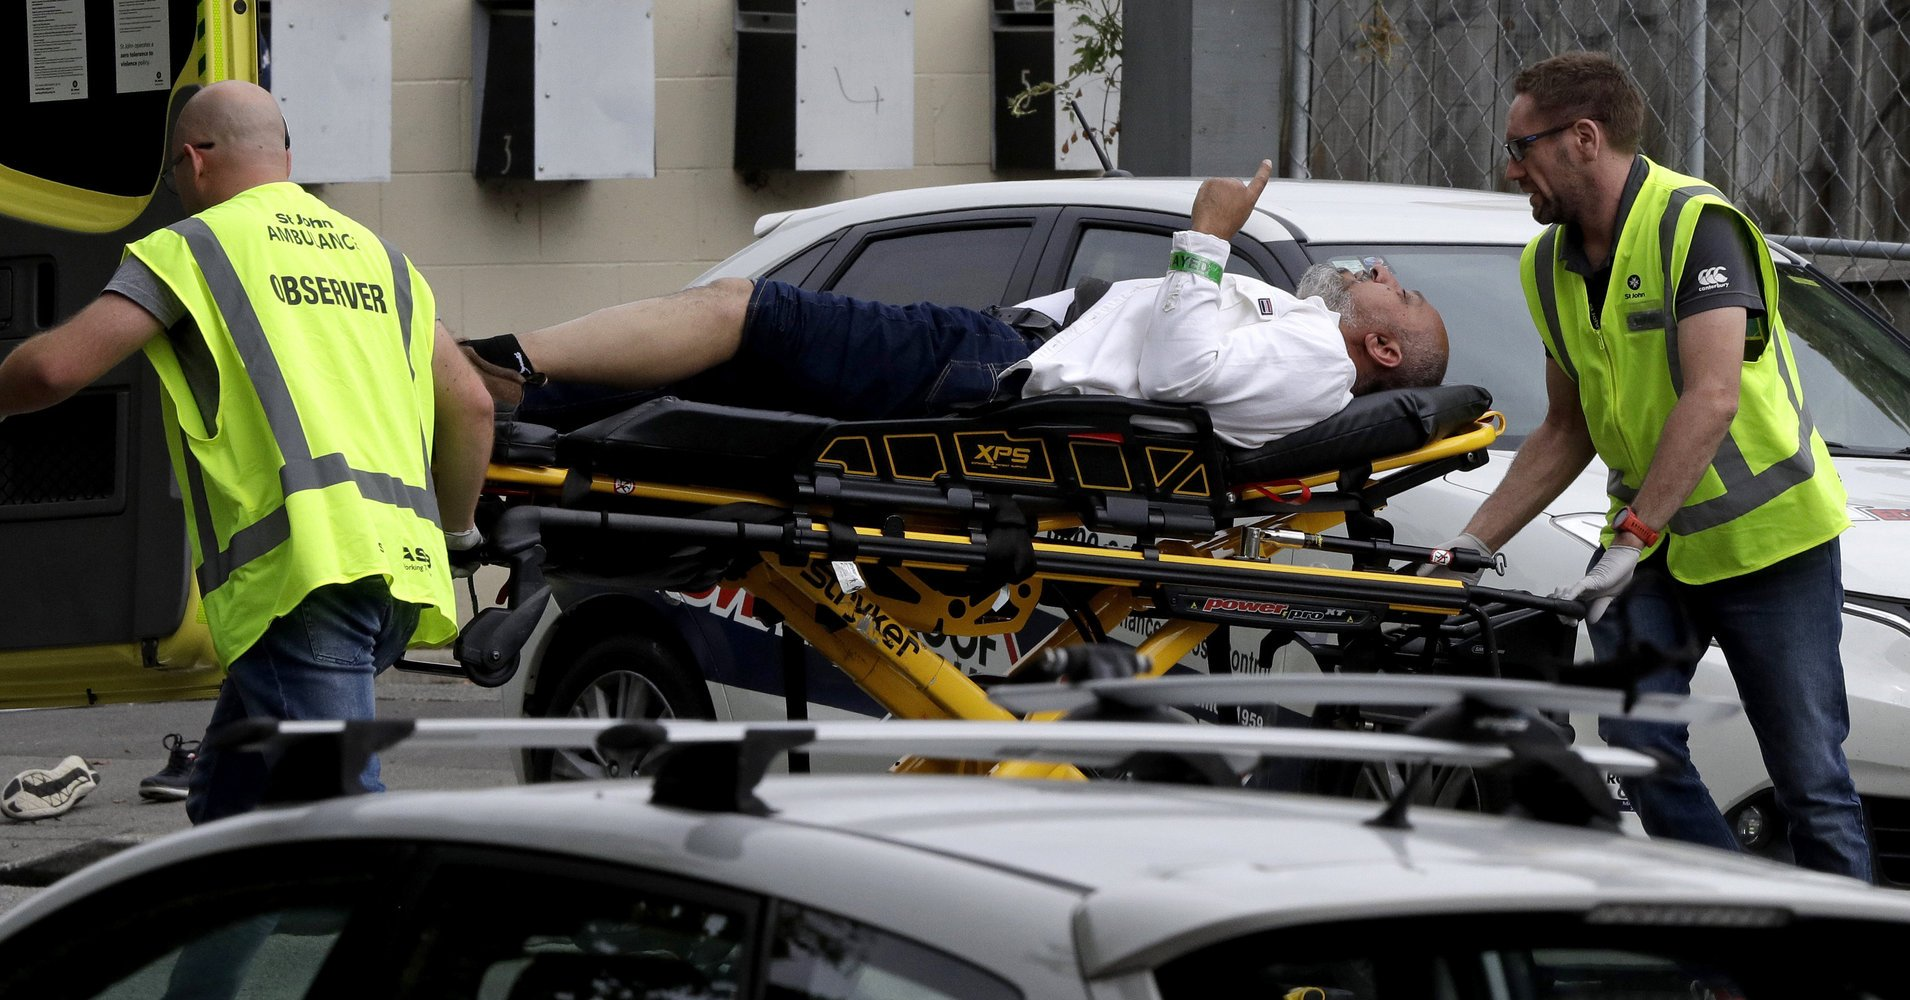 'Critical incident': Shots fired at New Zealand mosque, multiple victims reported